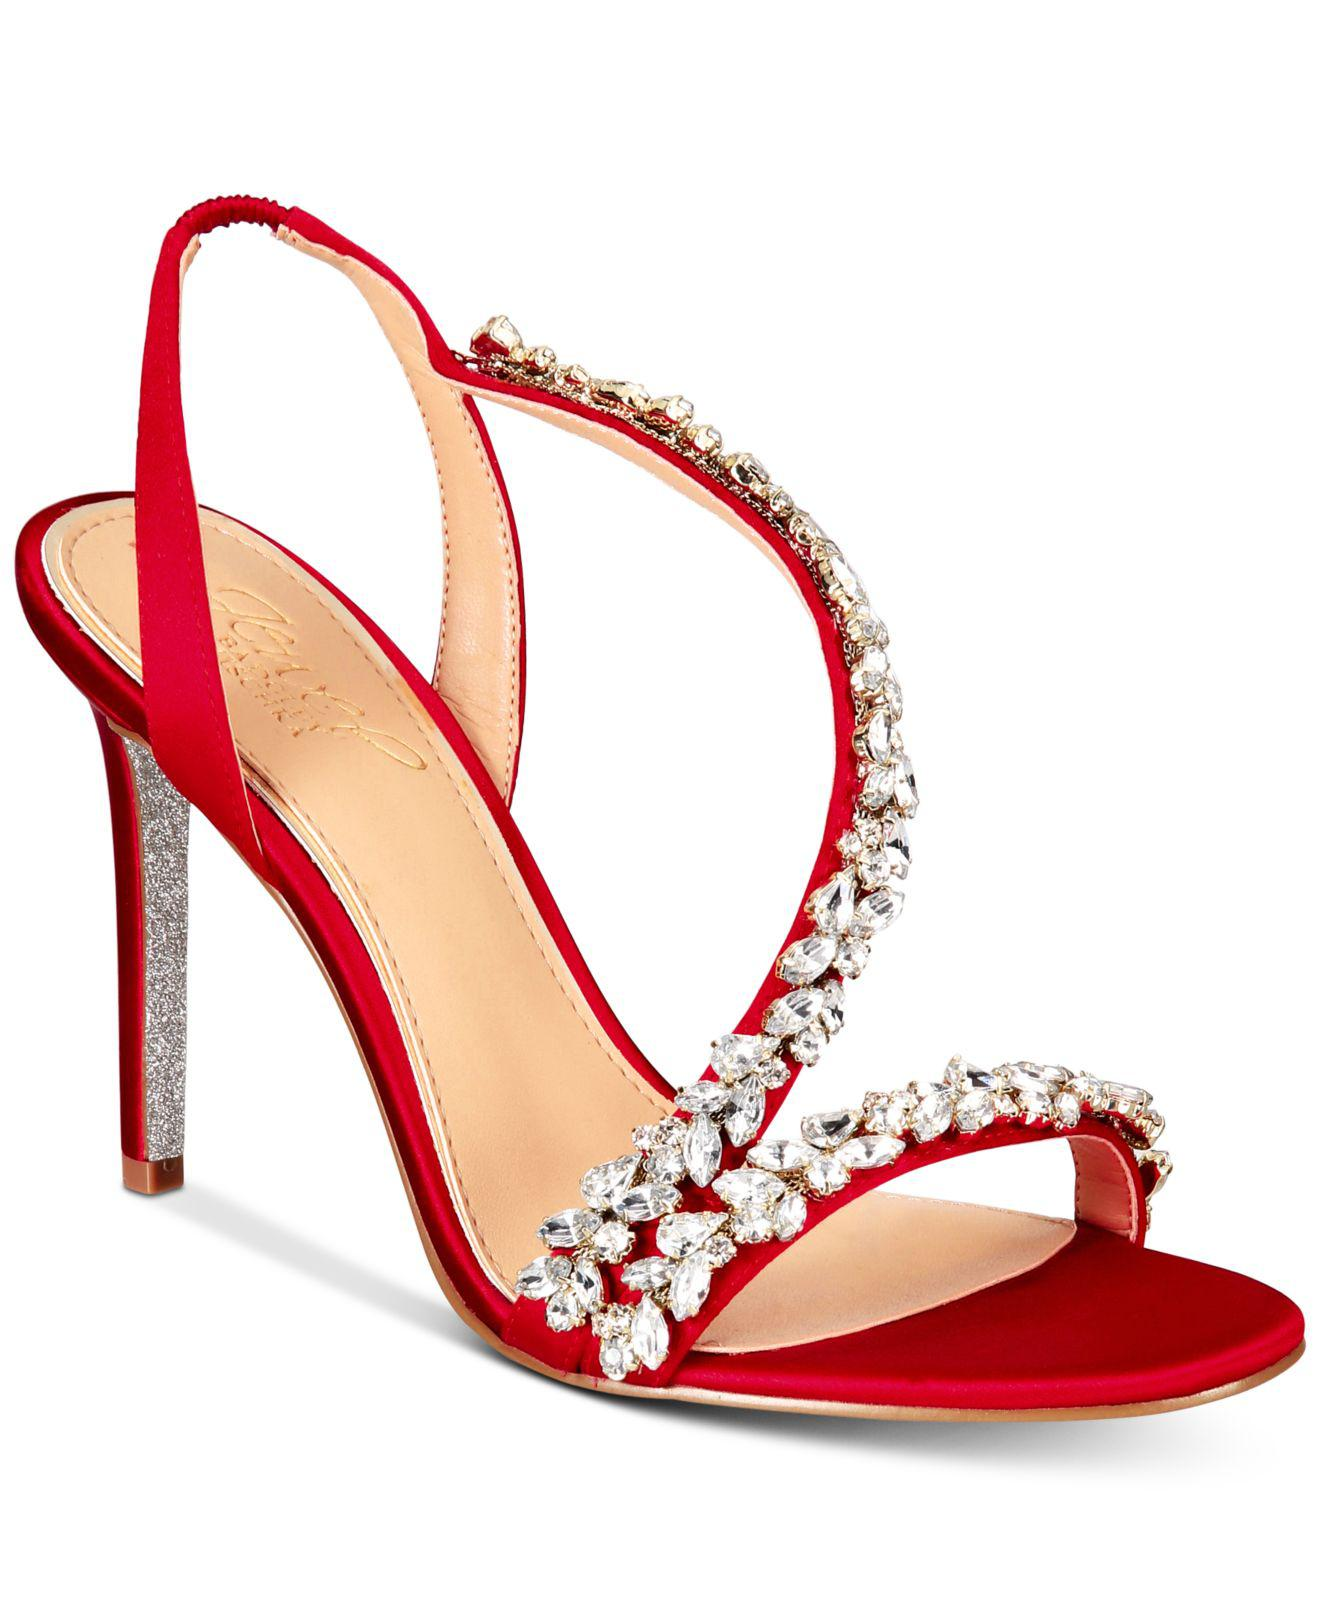 9582a3718fa Lyst - Badgley Mischka Java Embellished Evening Sandals in Red